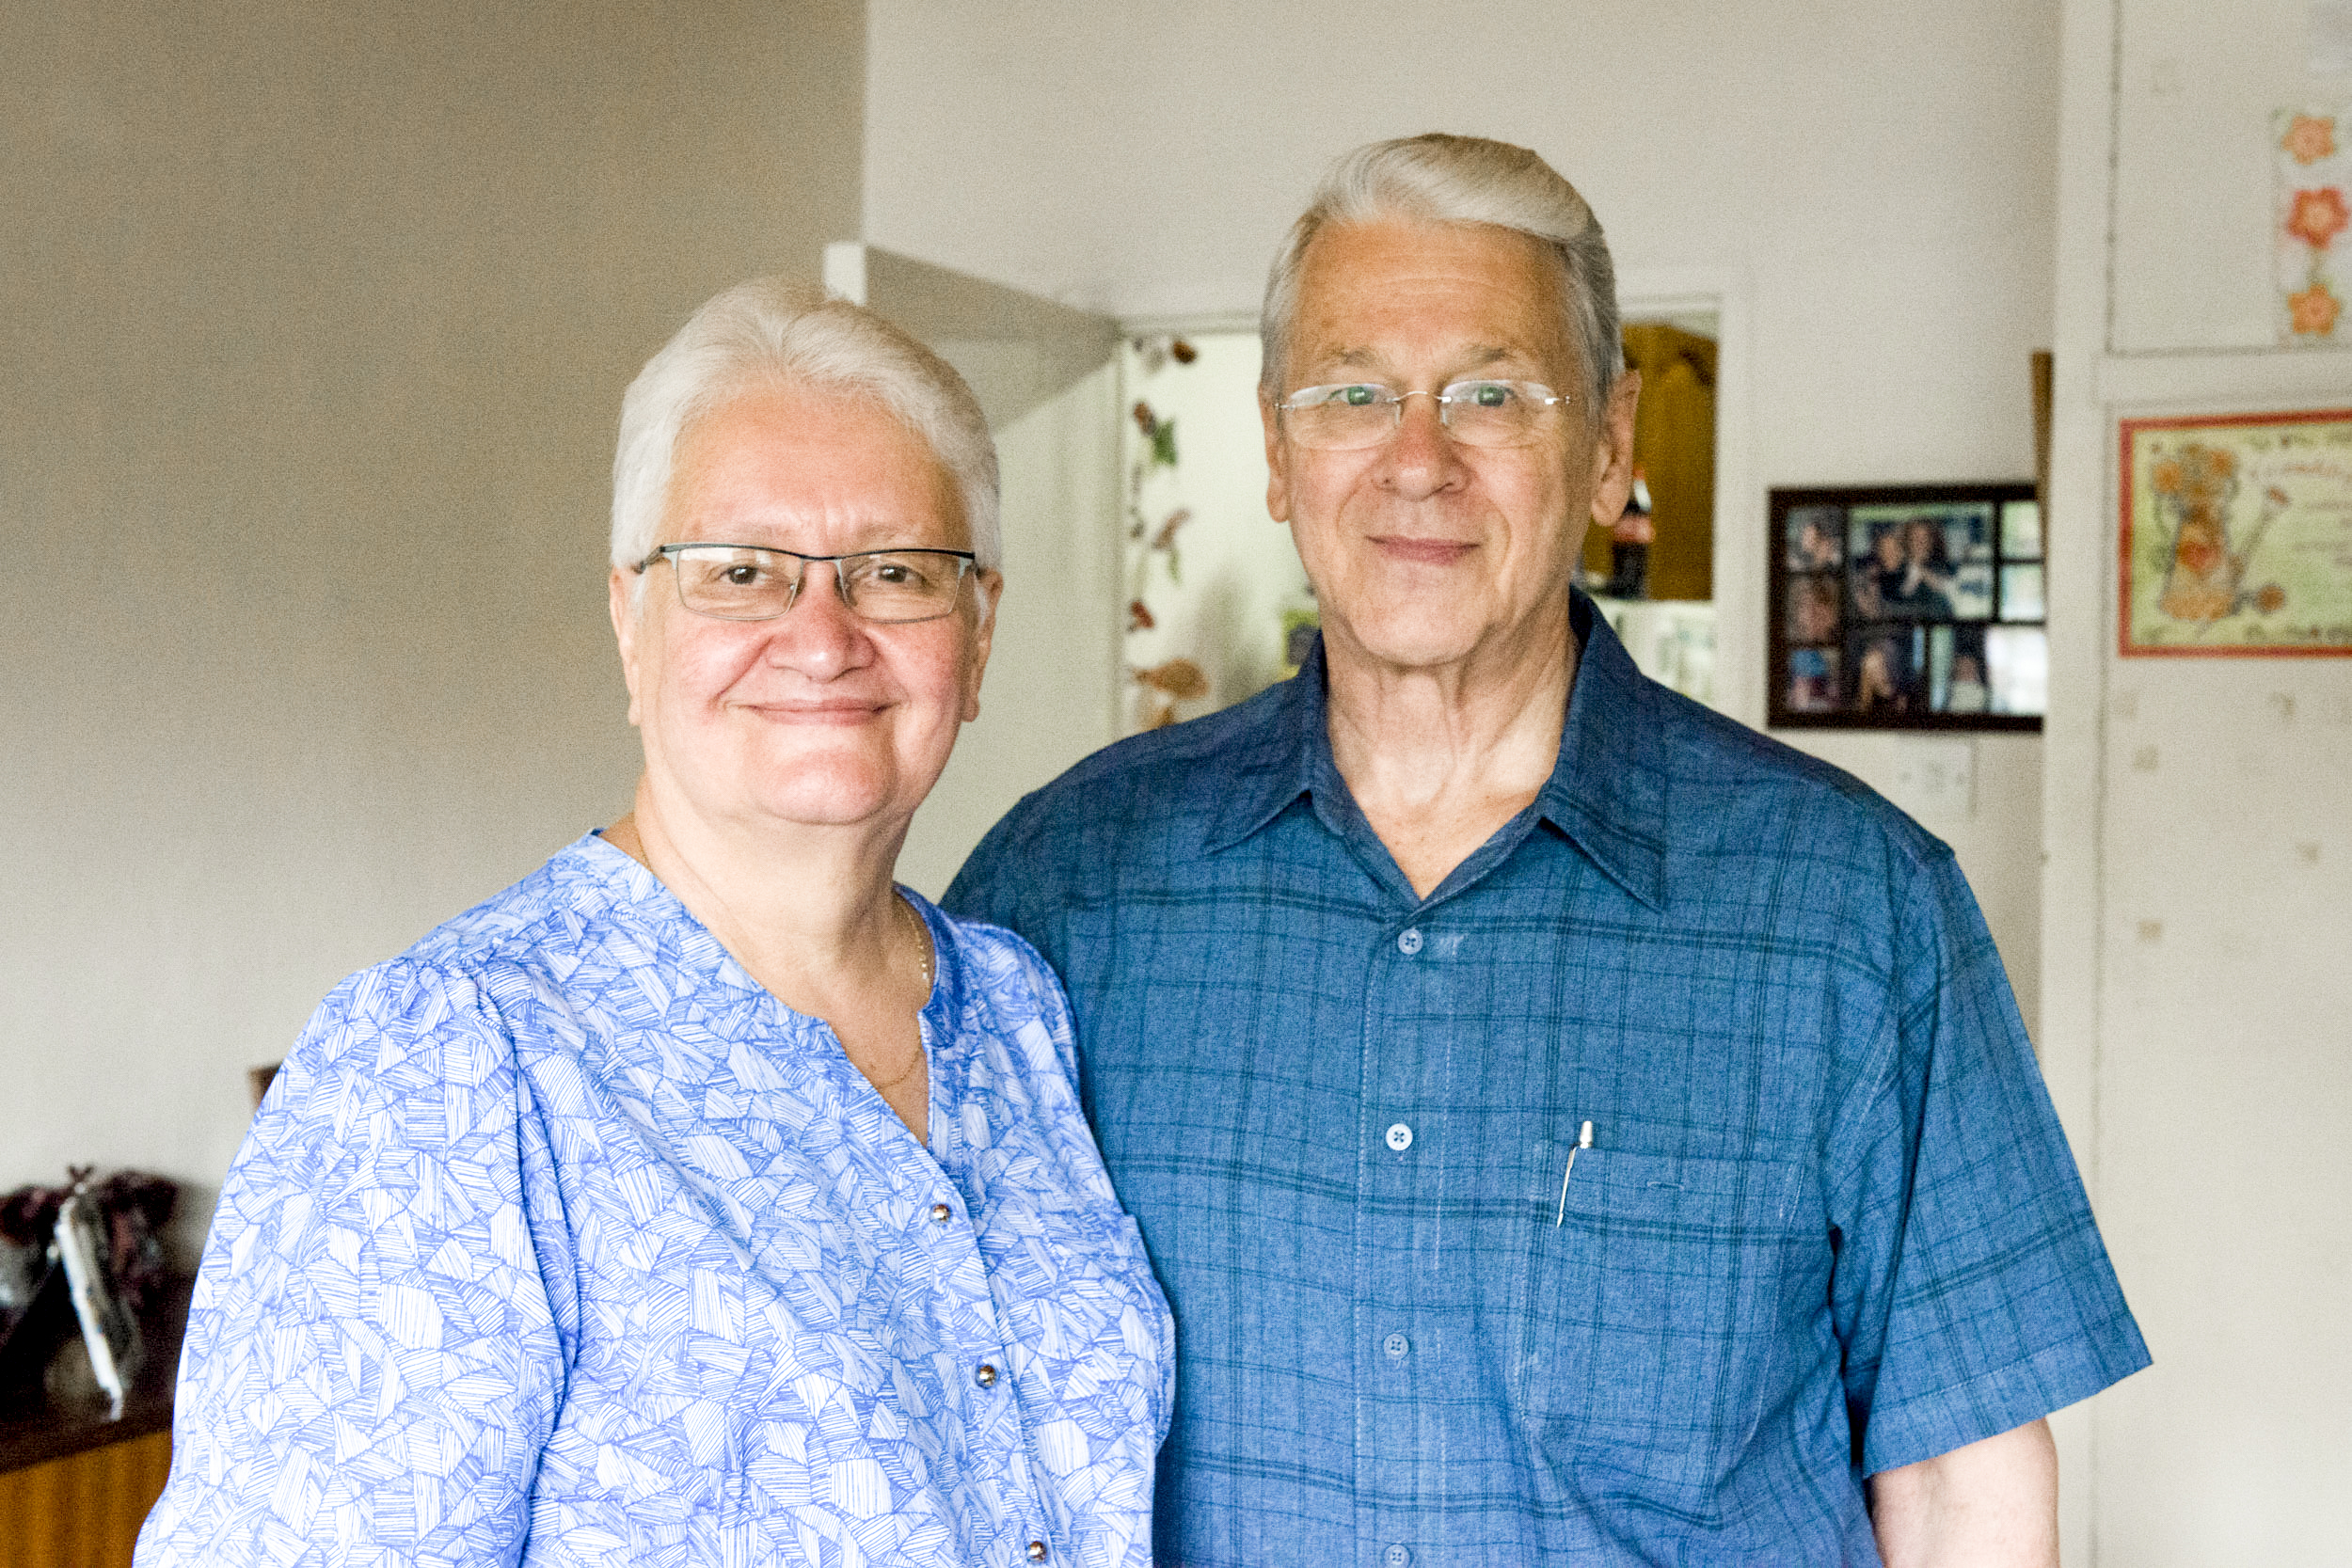 THE SCHWANDTS - Since the 1970s Irvin and Ruth Schwandt have made it their life's mission to provide healing and peace to others in Africa. From building a recording studio to broadcast biblical teachings across the country, to opening an orphanage of their own in 1998, they have worked tirelessly to serve others. Married for 41 years, they have three children and live at the Nairobi location of Rehema Home.